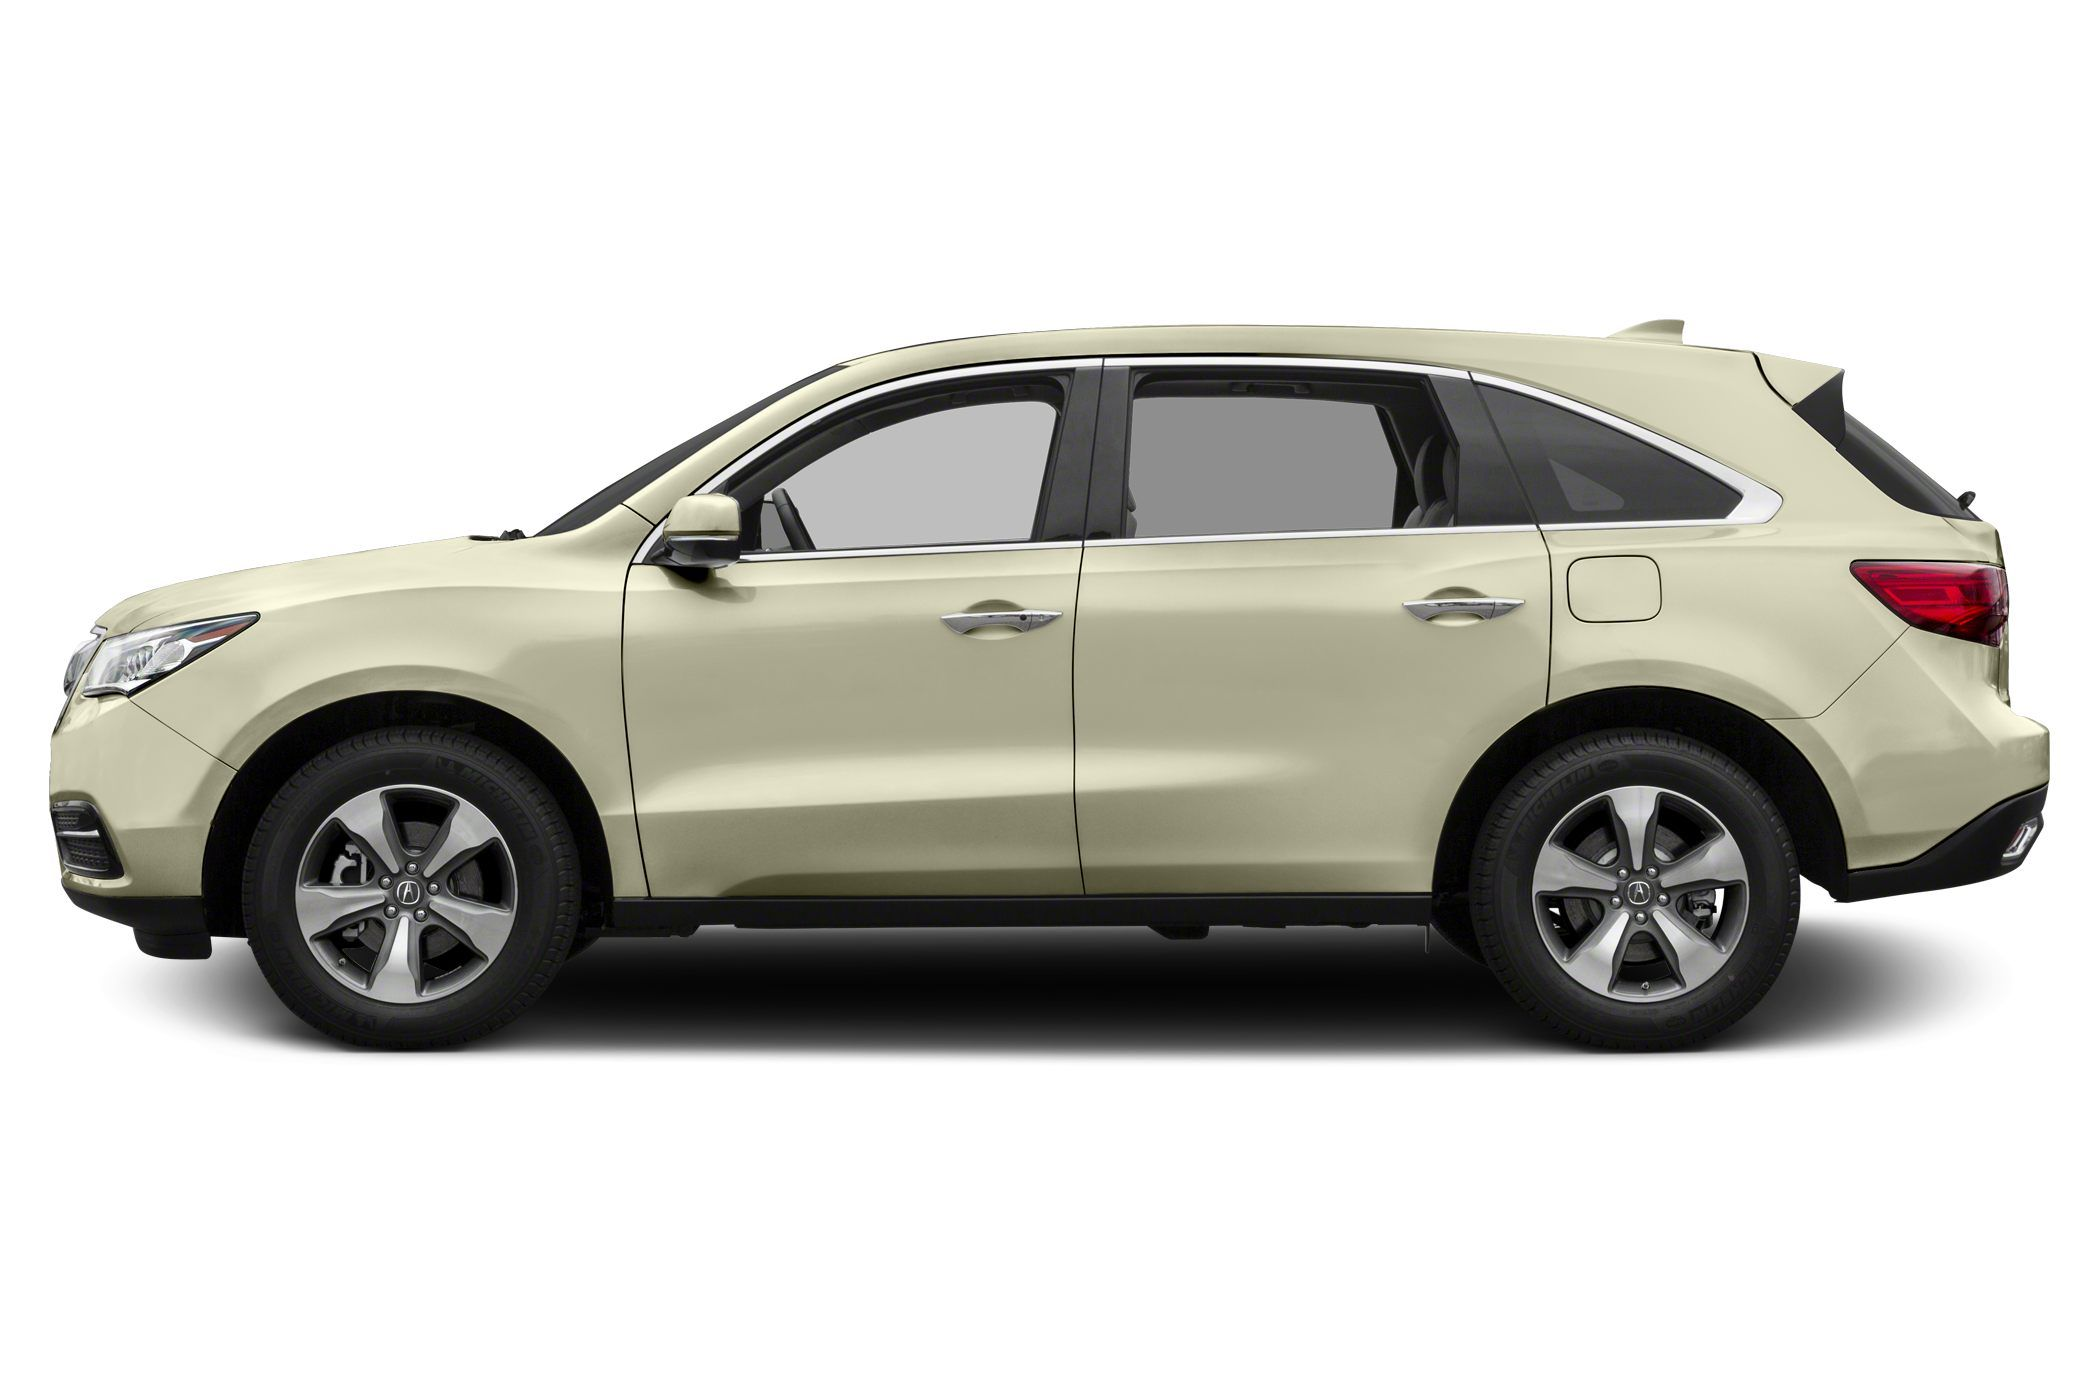 price seat goes the redesigned a has july acura pictures on picture seven starting car suv mdx fully of sale in luxury